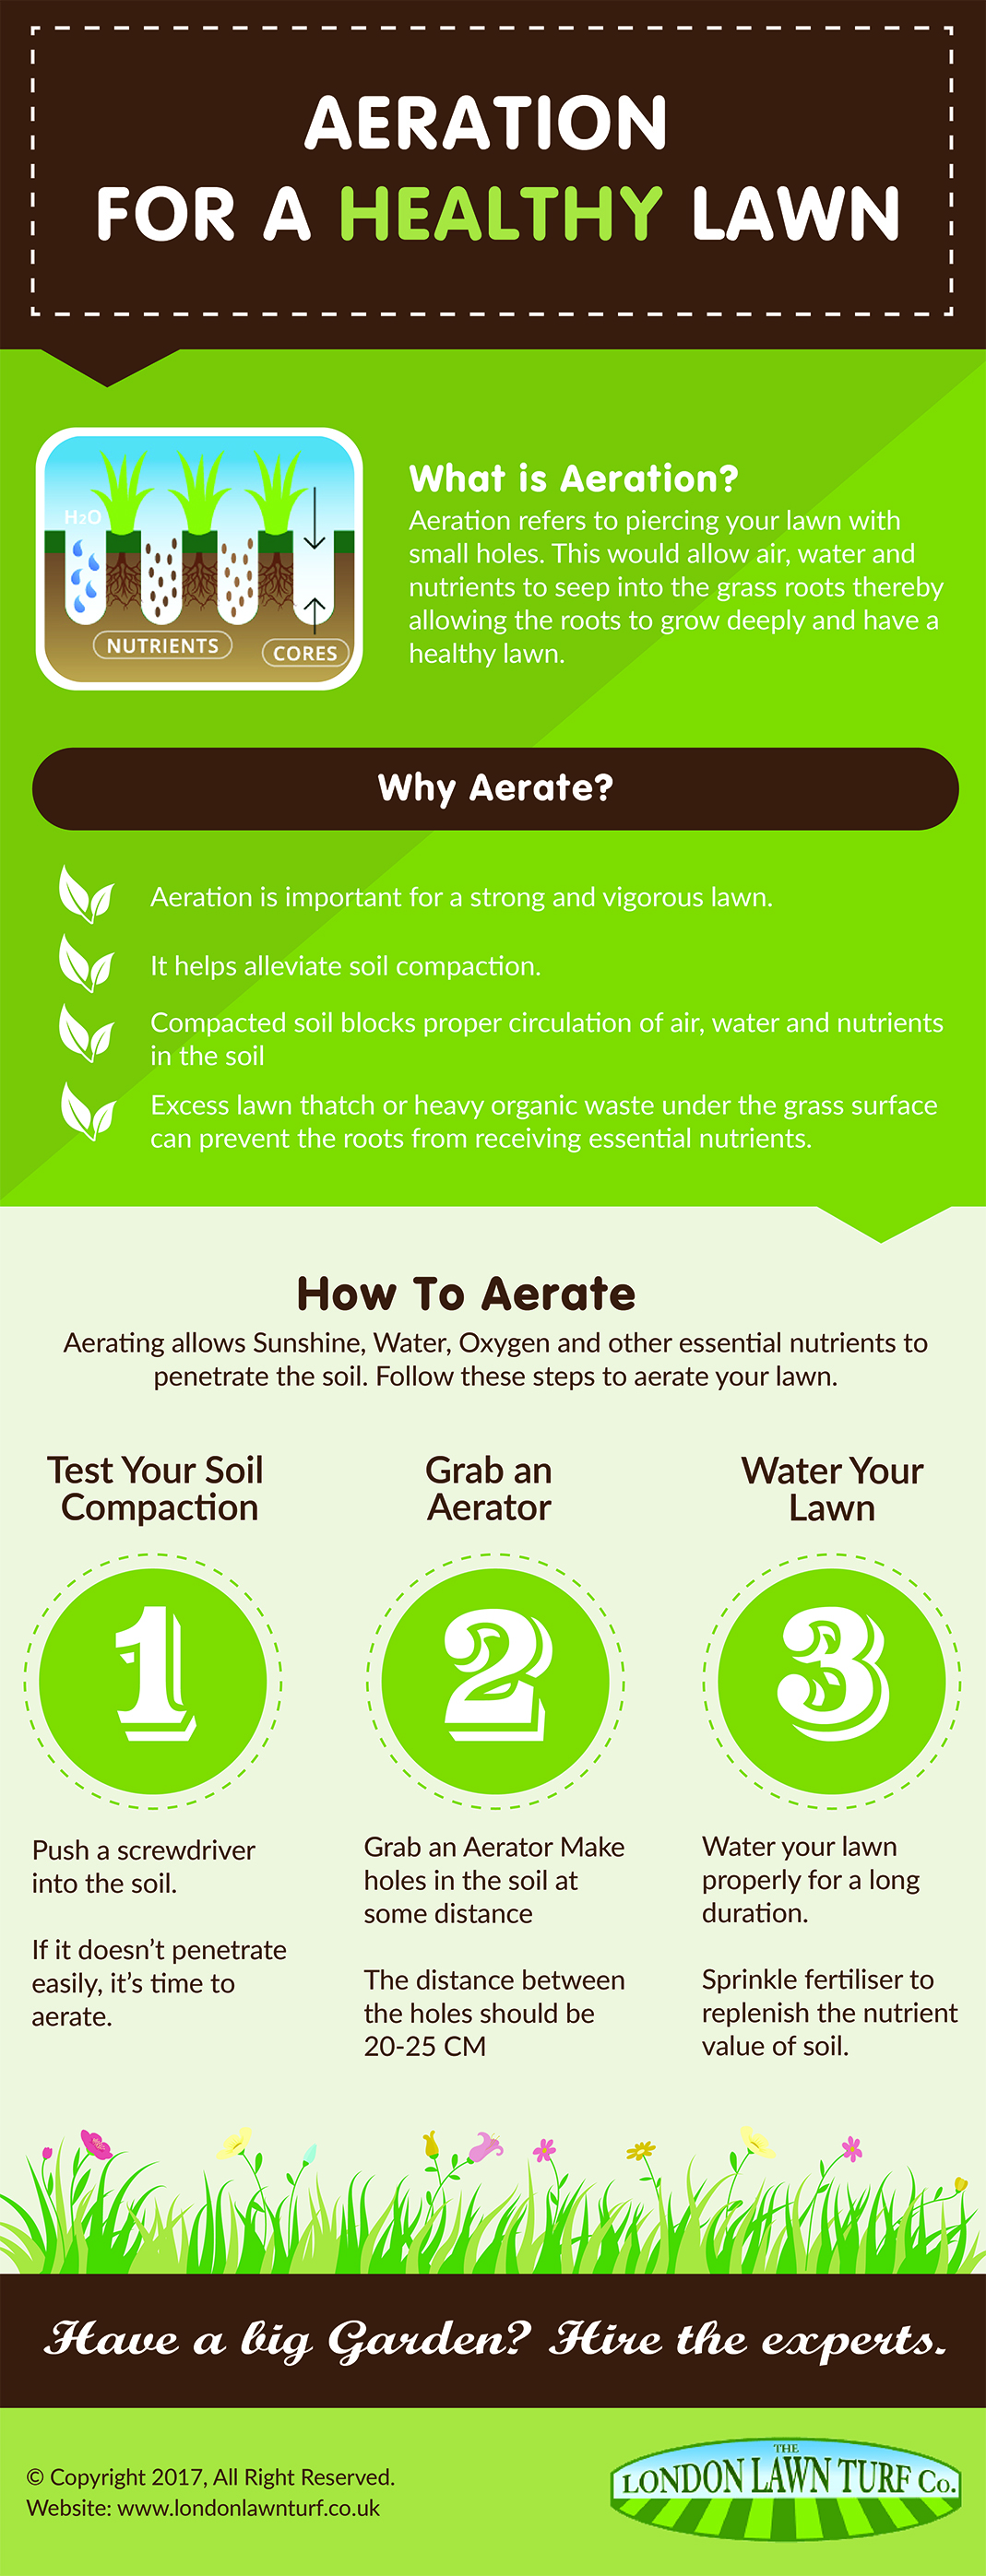 Aeration for a Healthy Law